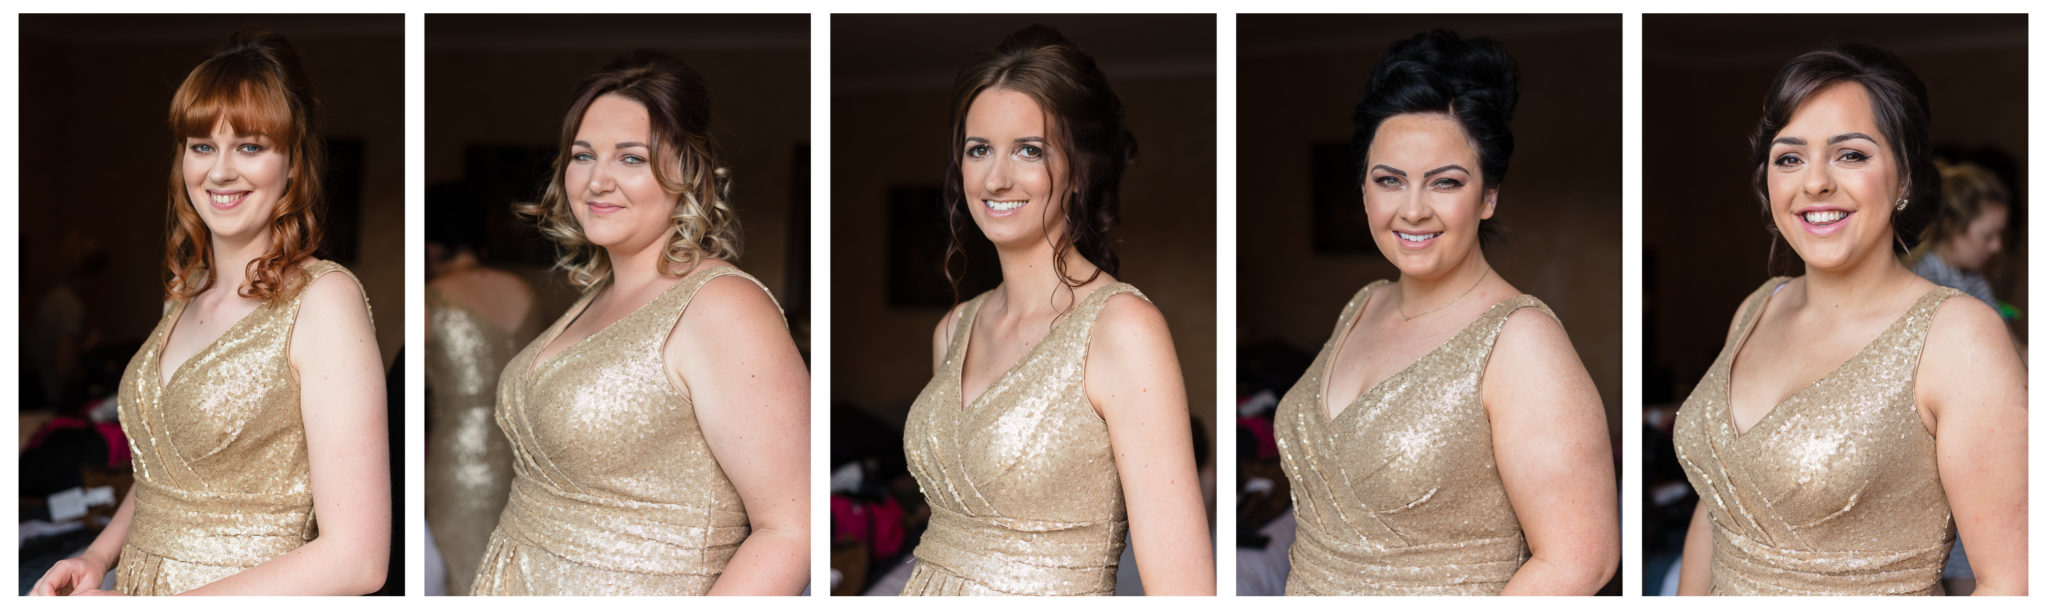 Bridesmaids at Old Thorns Hotel Wedding Photography by moore&moore photography